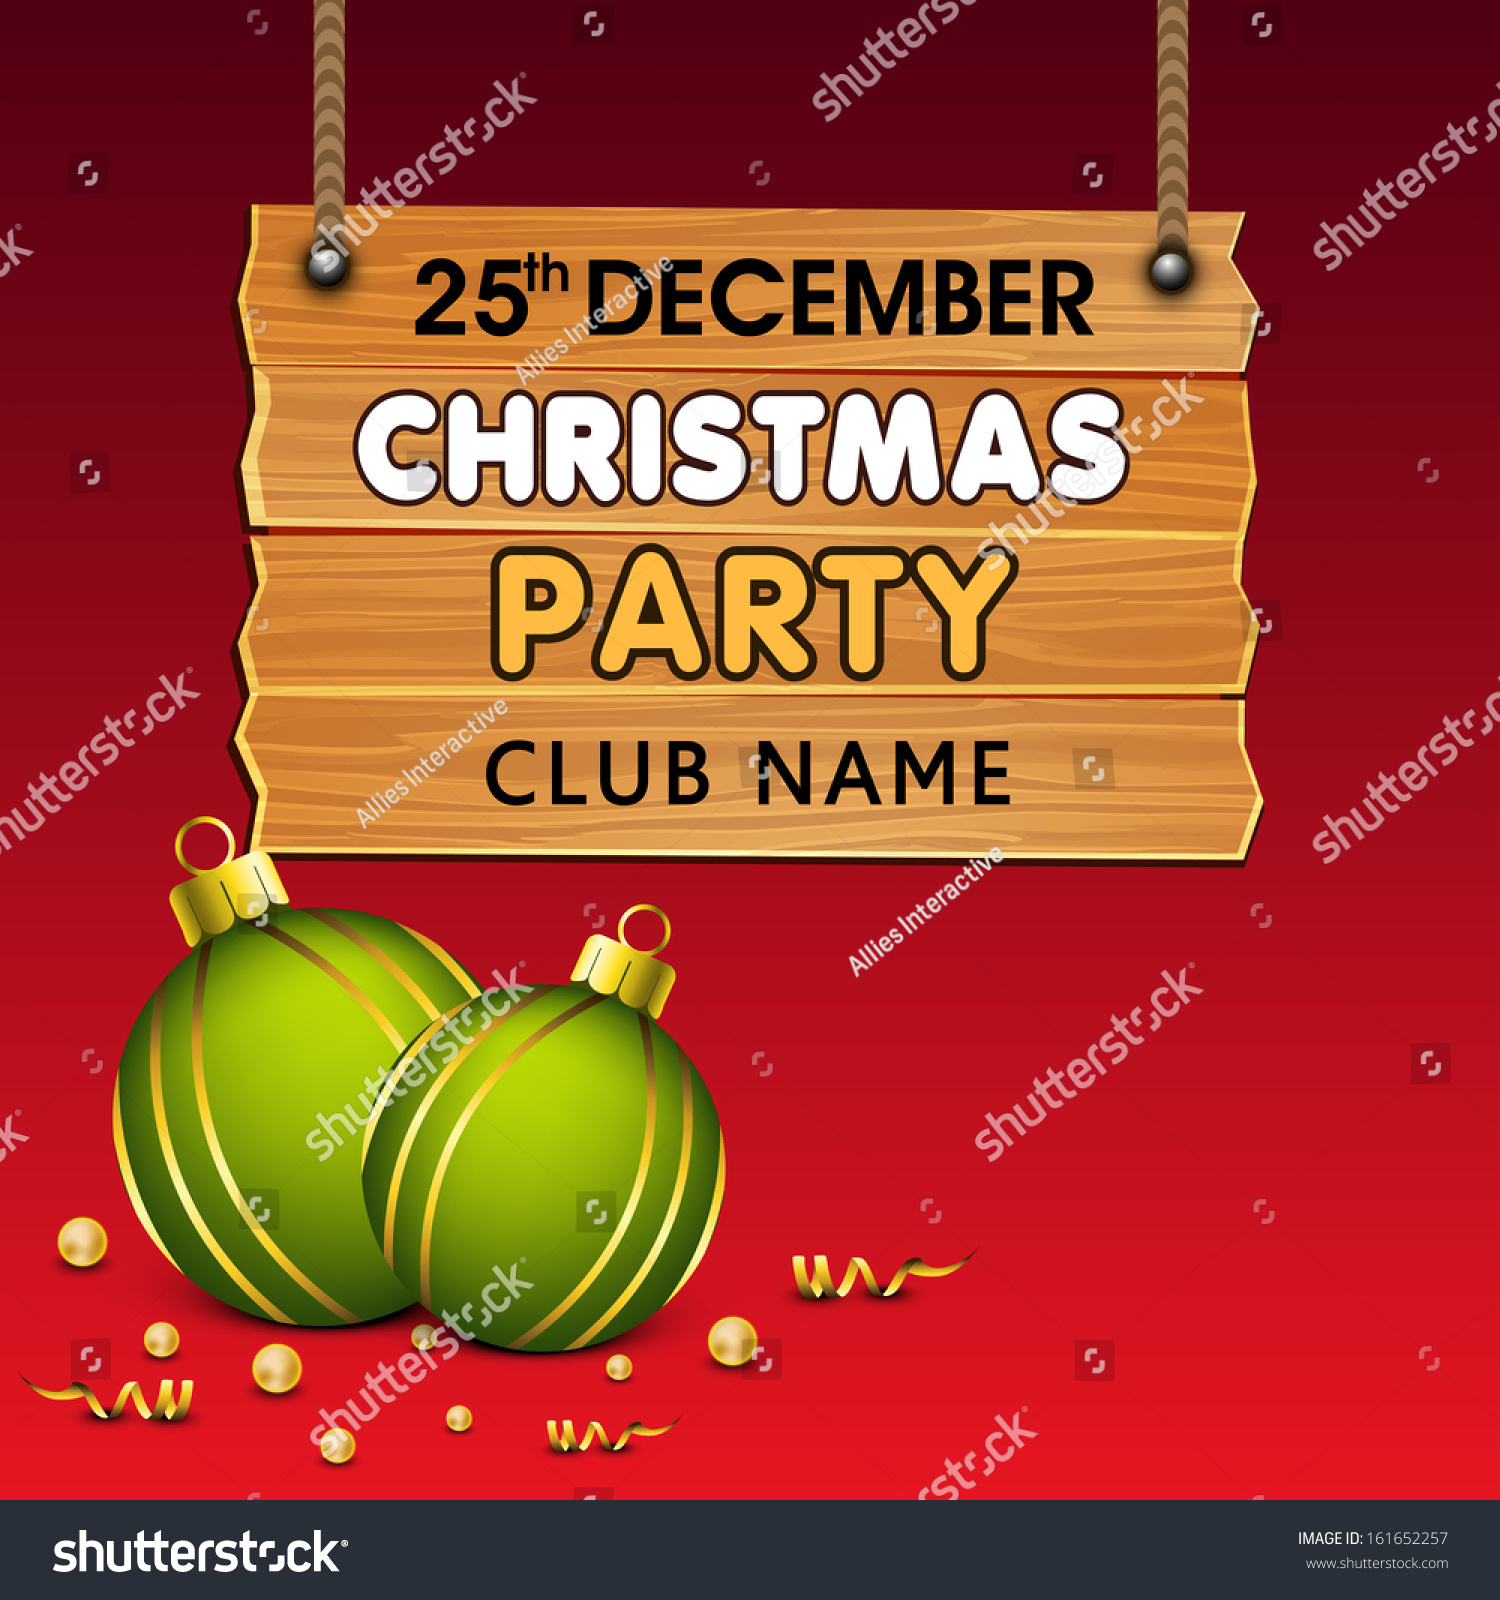 merry christmas party invitation hanging wooden signboard save to a lightbox